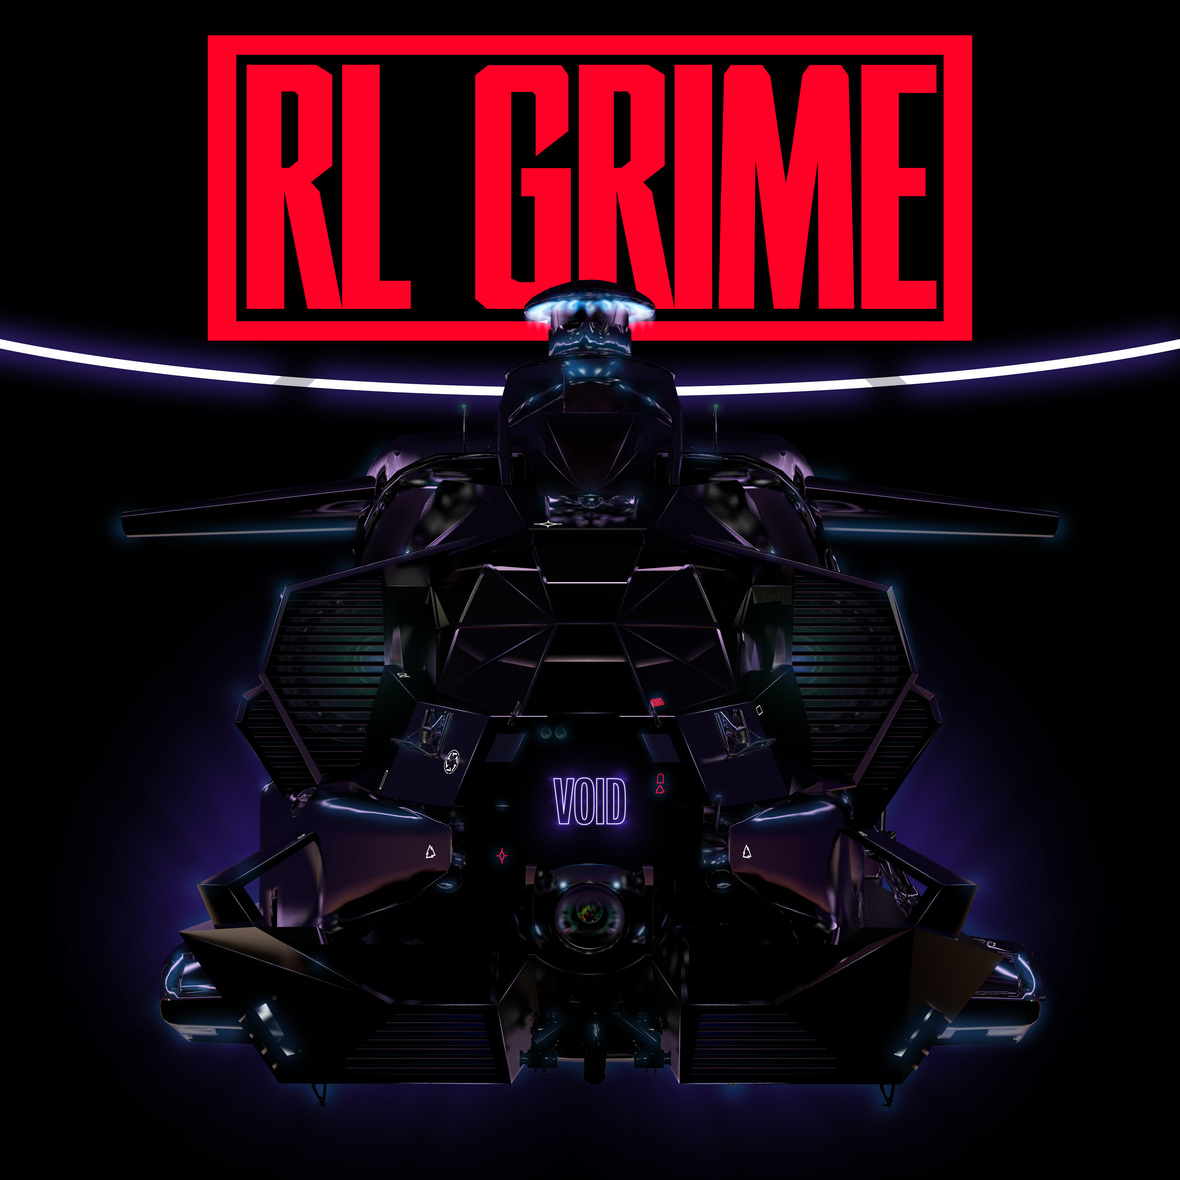 RL Grime Albums: songs, discography, biography, and listening ...